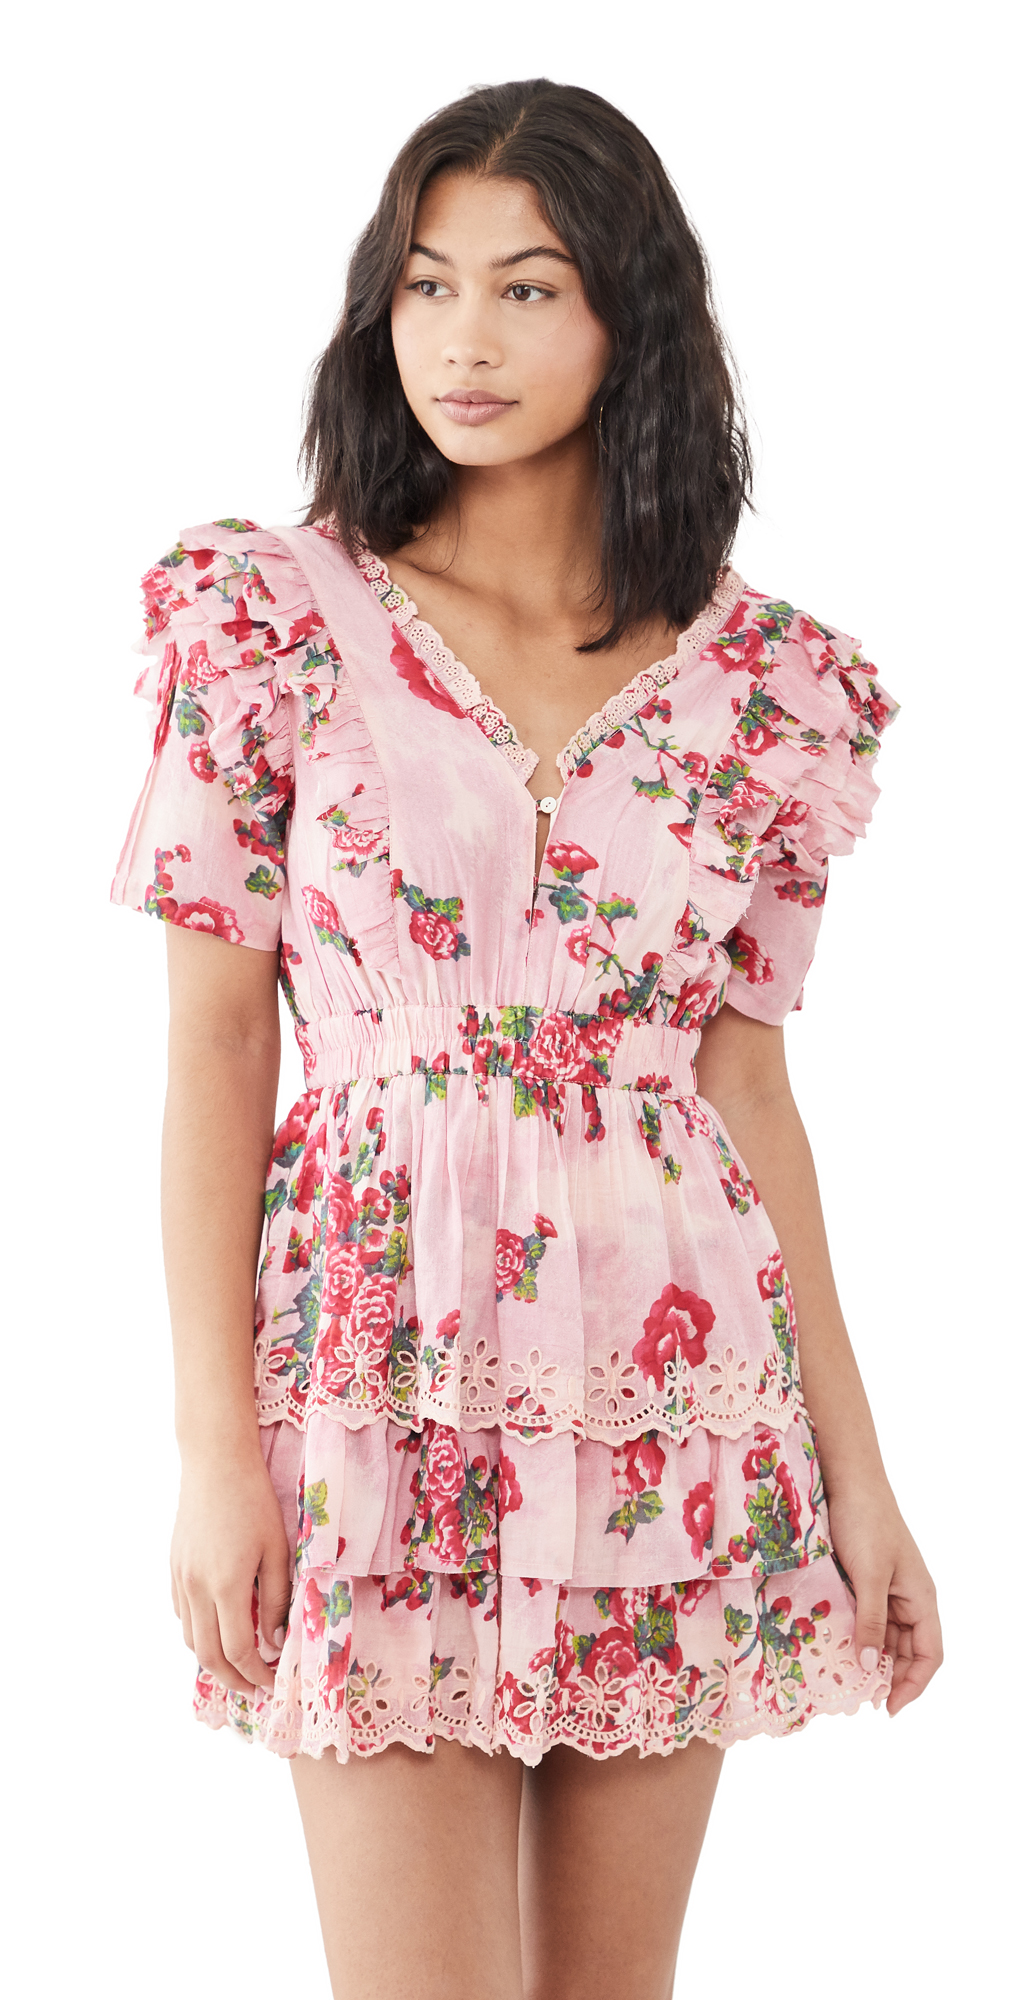 LoveShackFancy Aldina Dress